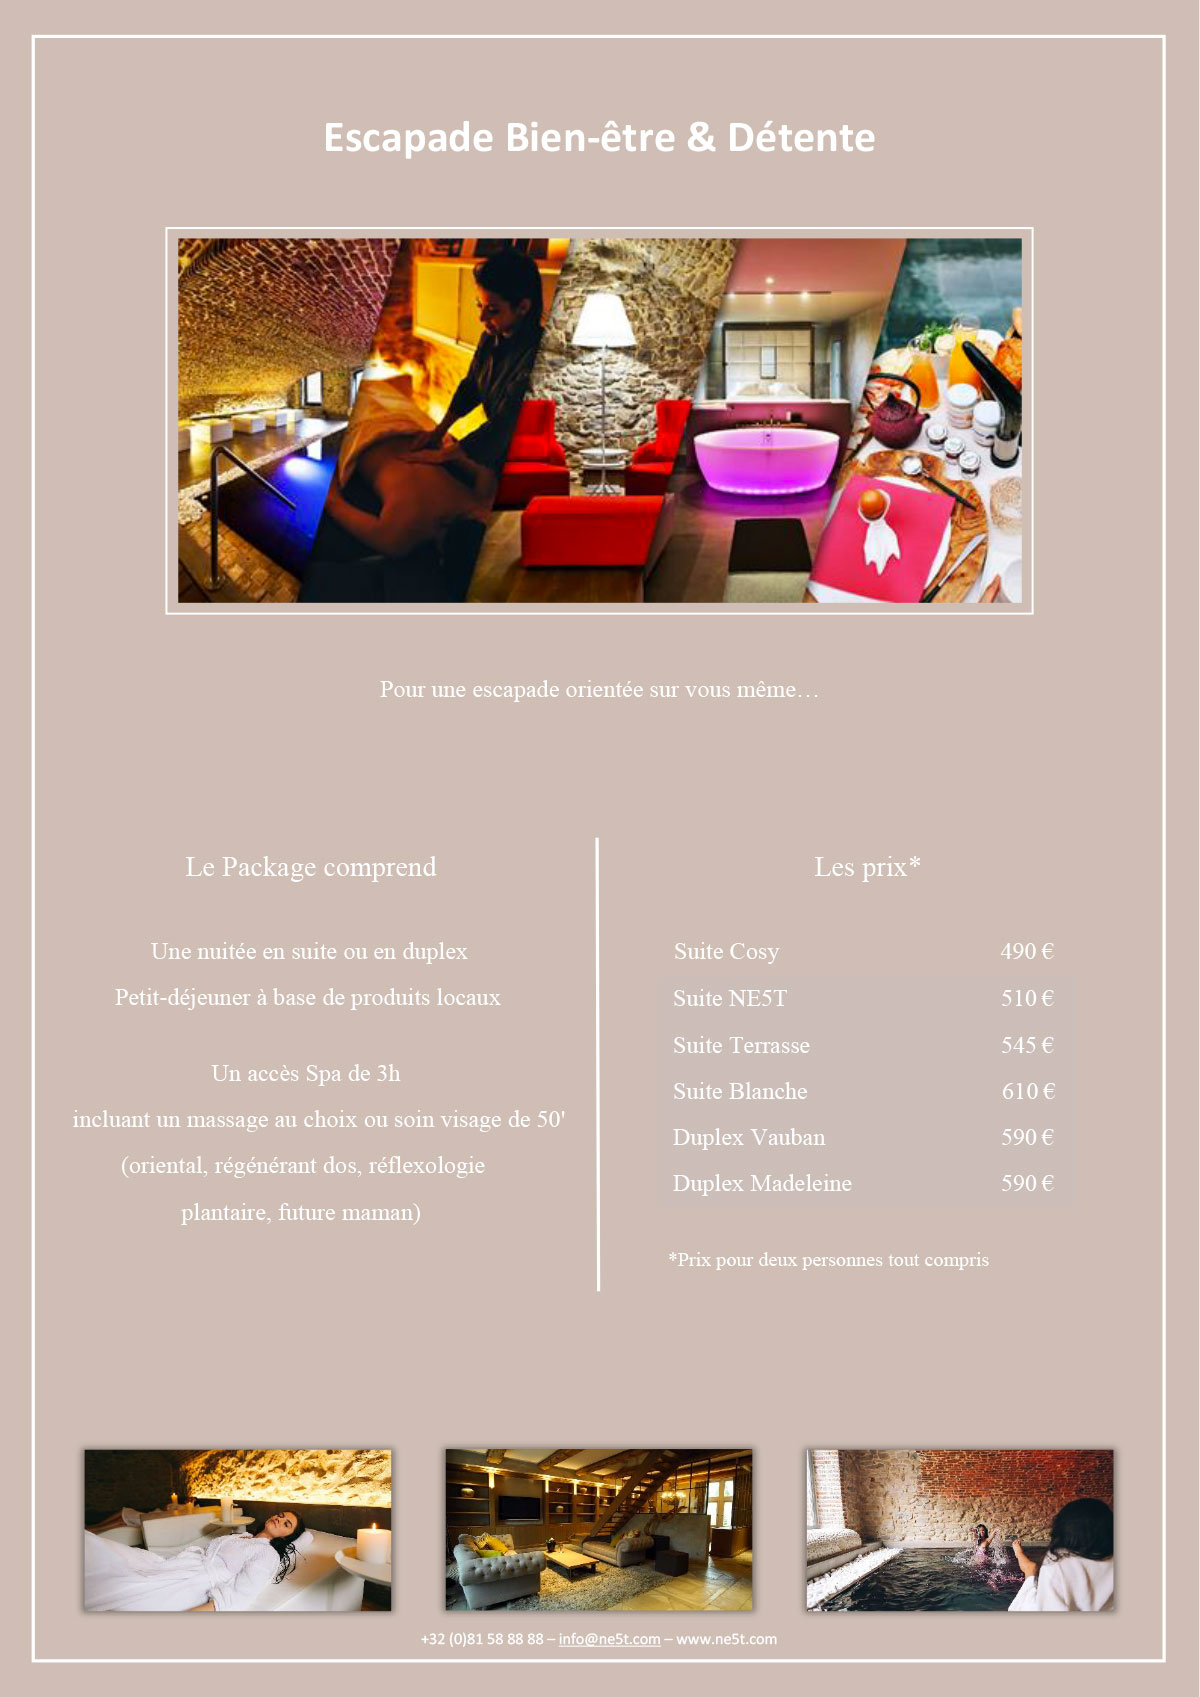 packages-ne5t-hotel-namur-belgique-4-copy